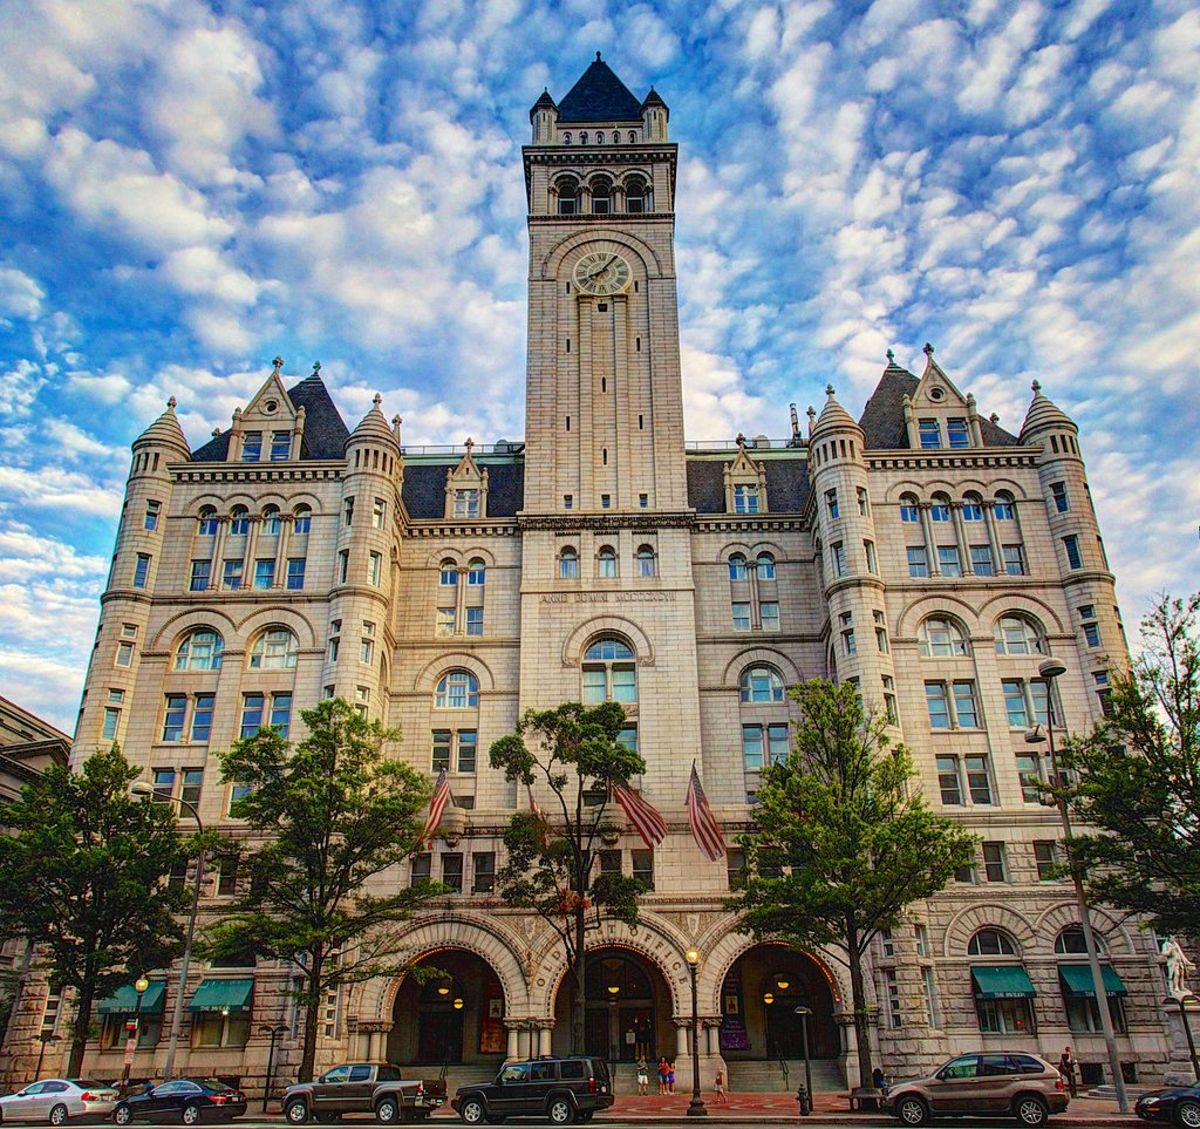 Trump® International Hotel Washington, D.C. at the Old Post Office Pavilion.